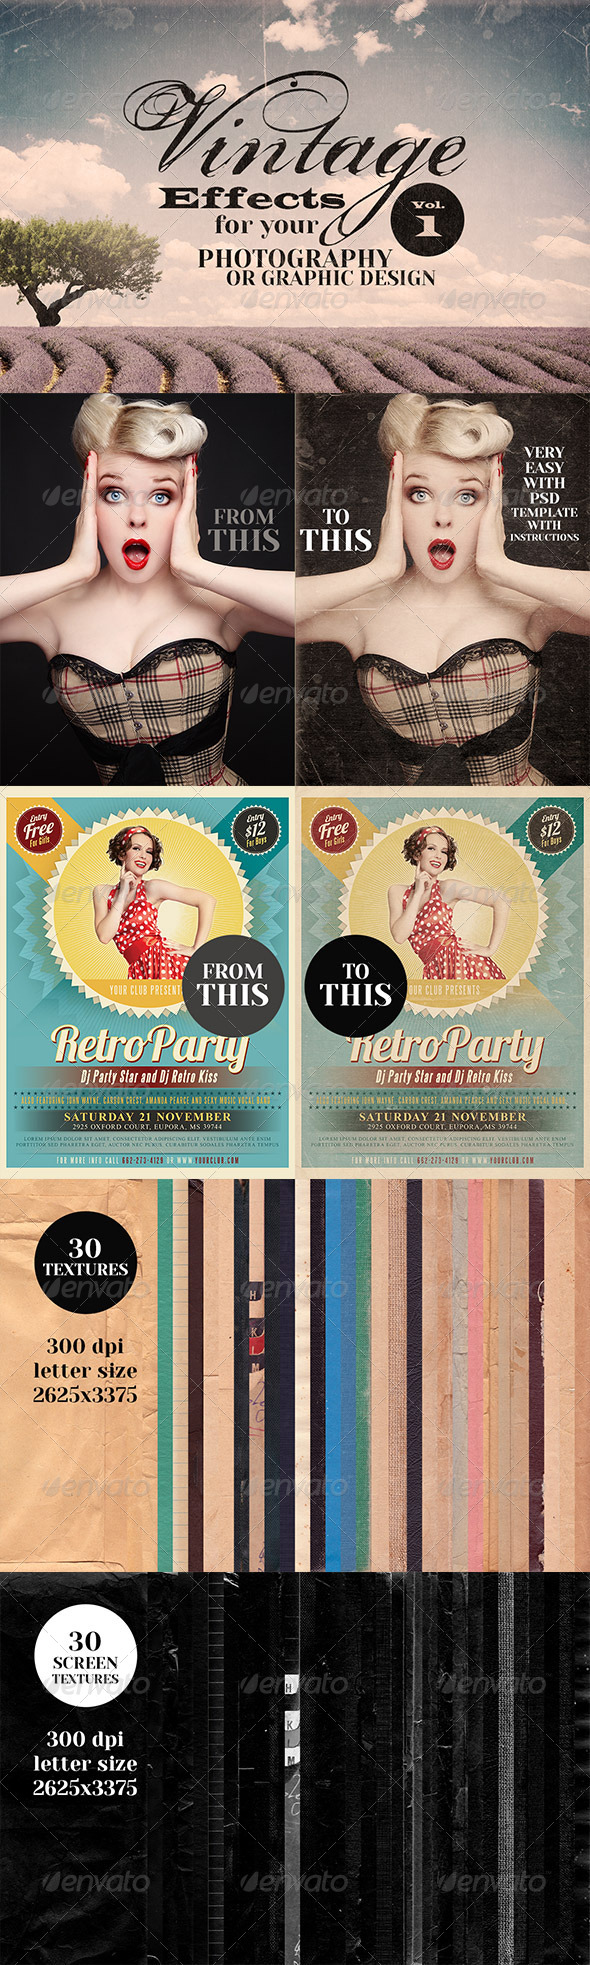 GraphicRiver Vintage Effects for Photo or Designs 6138527